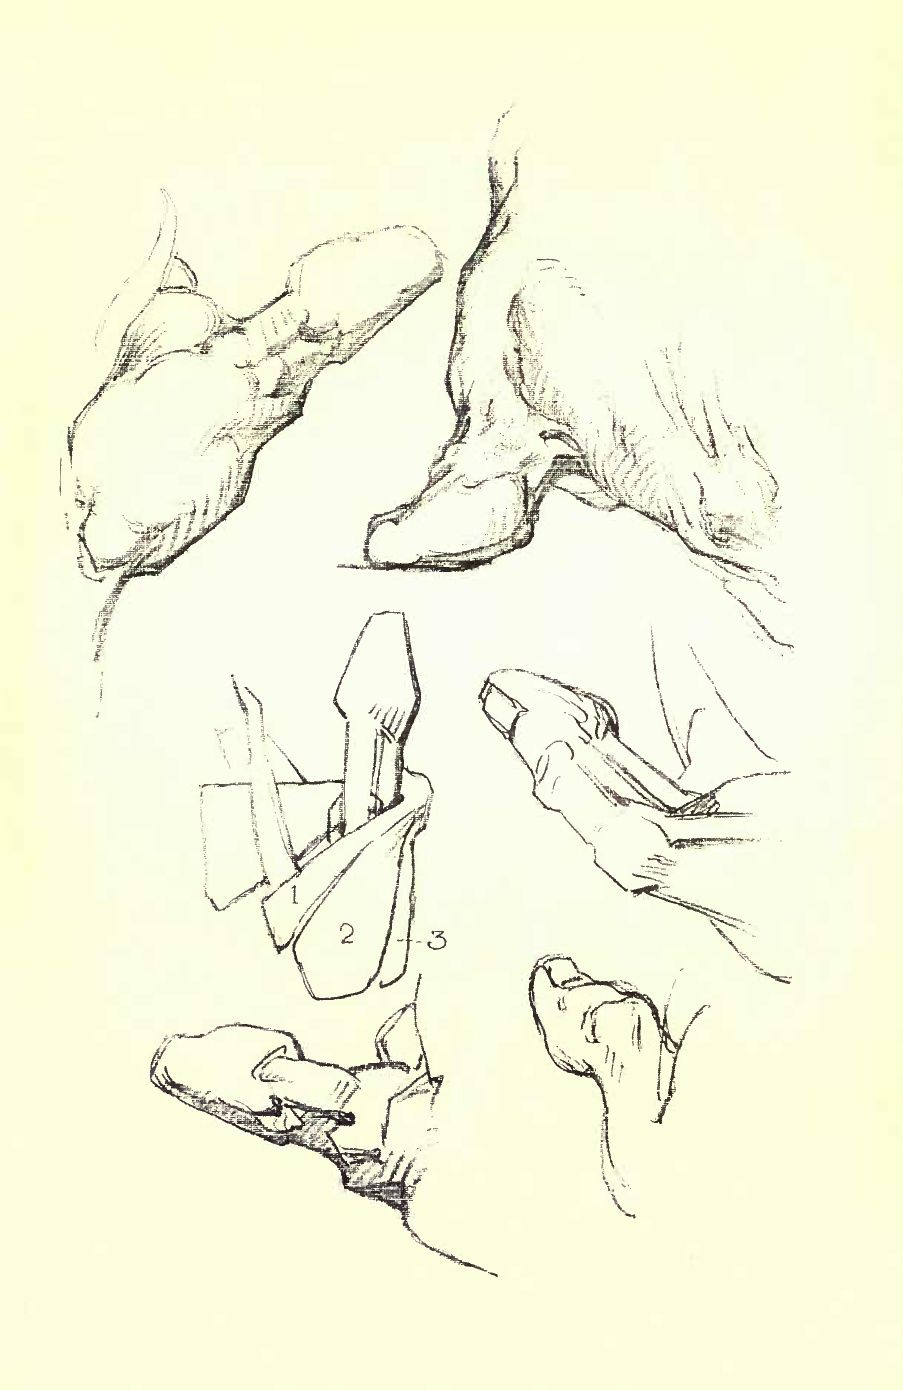 Constructive Anatomy by George Bridgman | Scribd | Anatomy | Pinterest